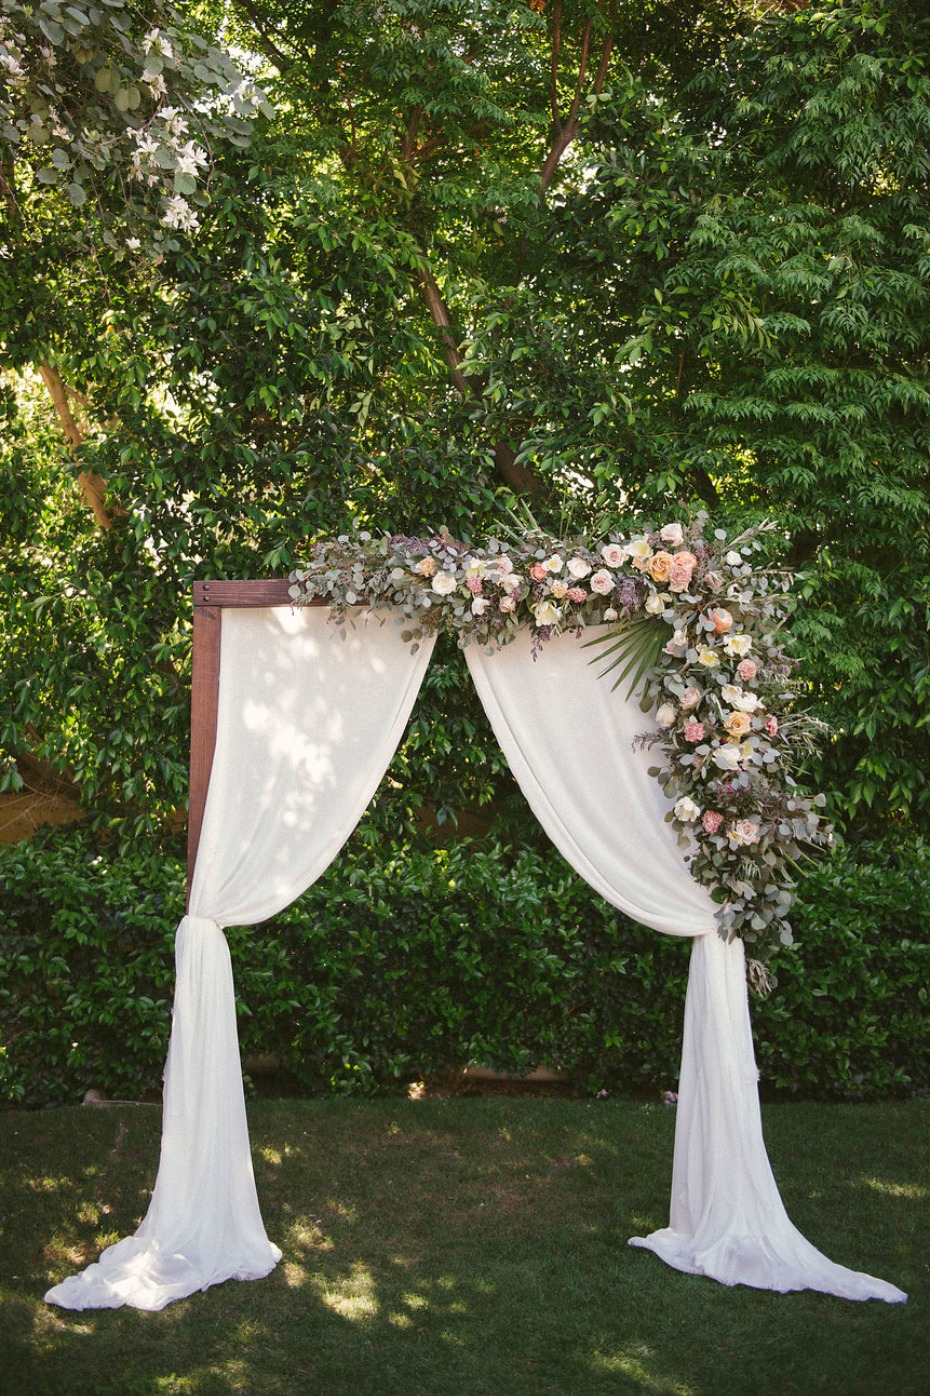 Picture perfect arch with draped fabric and garden florals